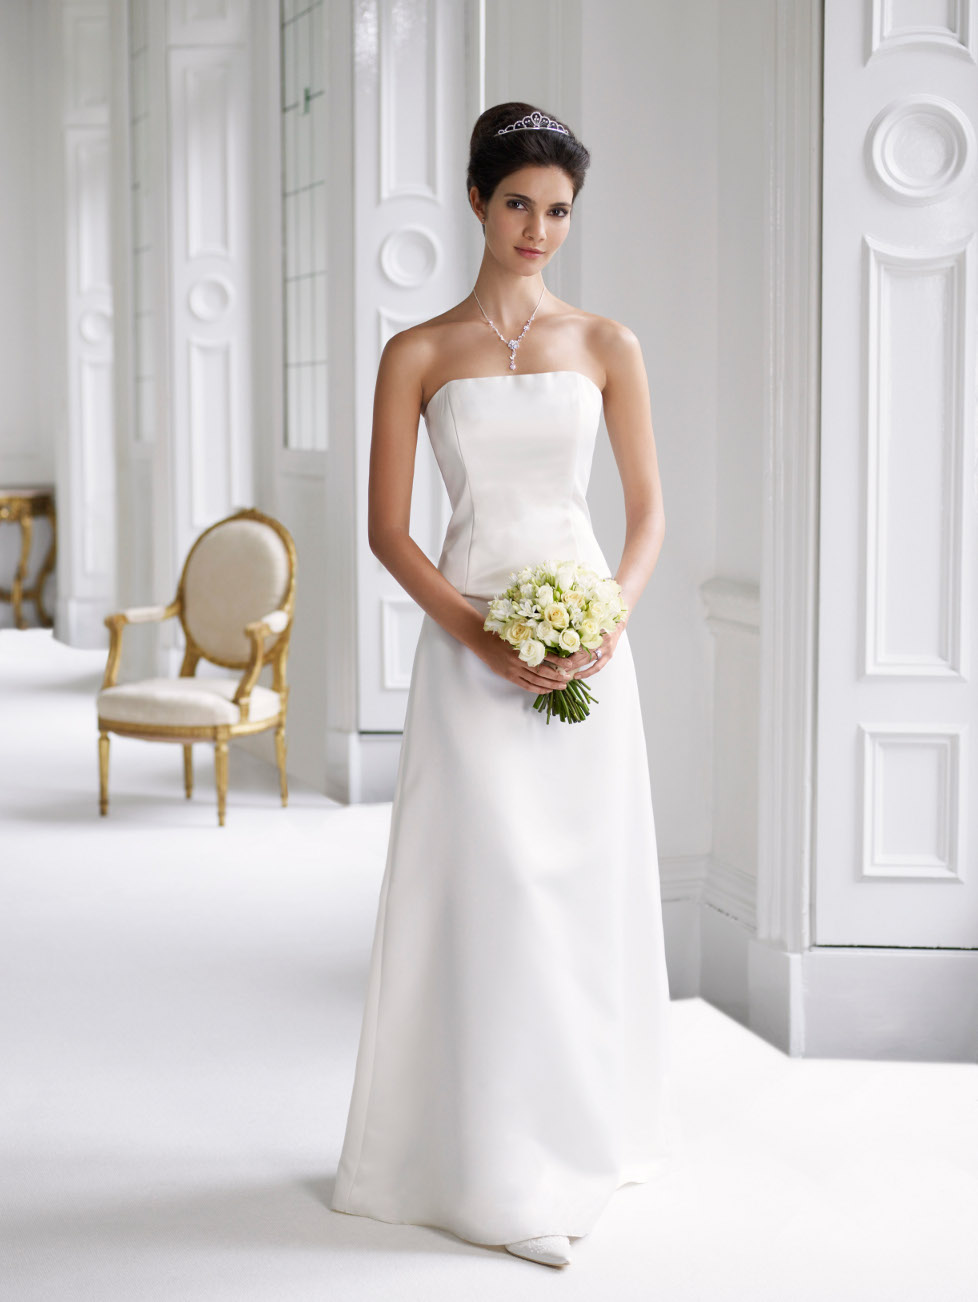 The Tradition Behind White Wedding Dresses Cherry Marry